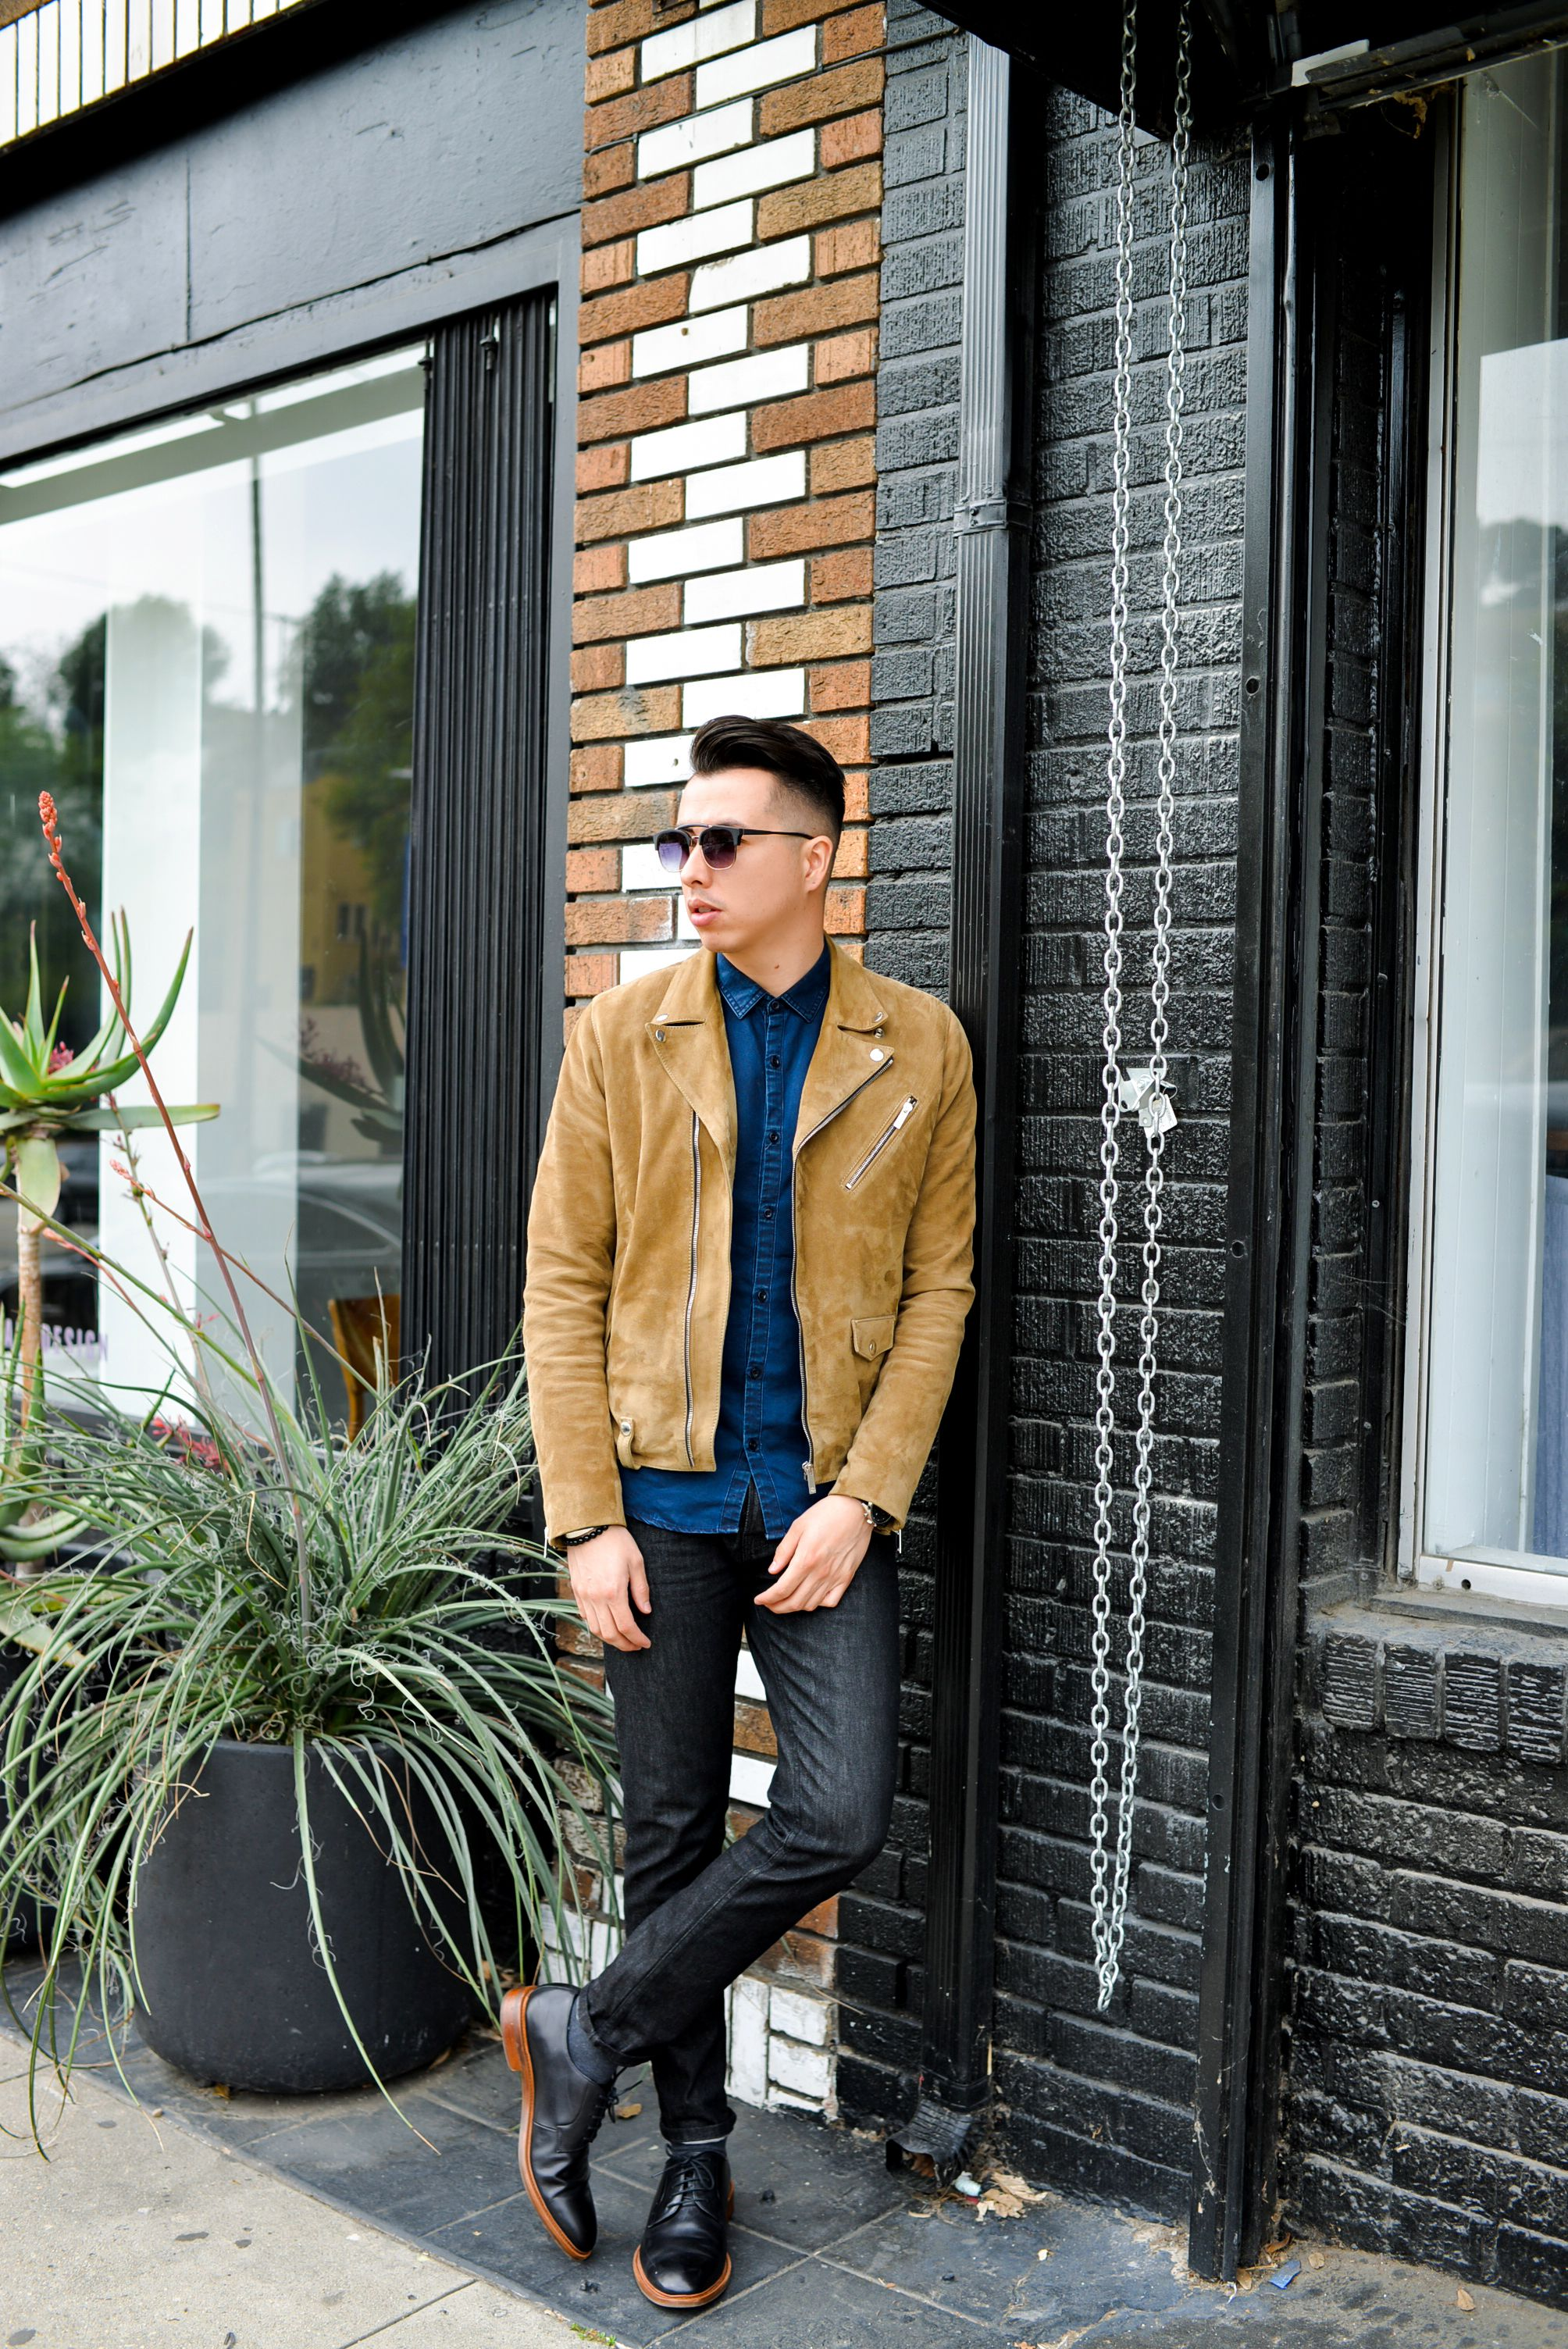 Suede Jacket Dark Chambray Button Up Black Skinny Jeans Black Dress Shoes Mens Fashion Suits Casual Hipster Mens Fashion Mens Fashion Summer Shorts [ 3008 x 2008 Pixel ]